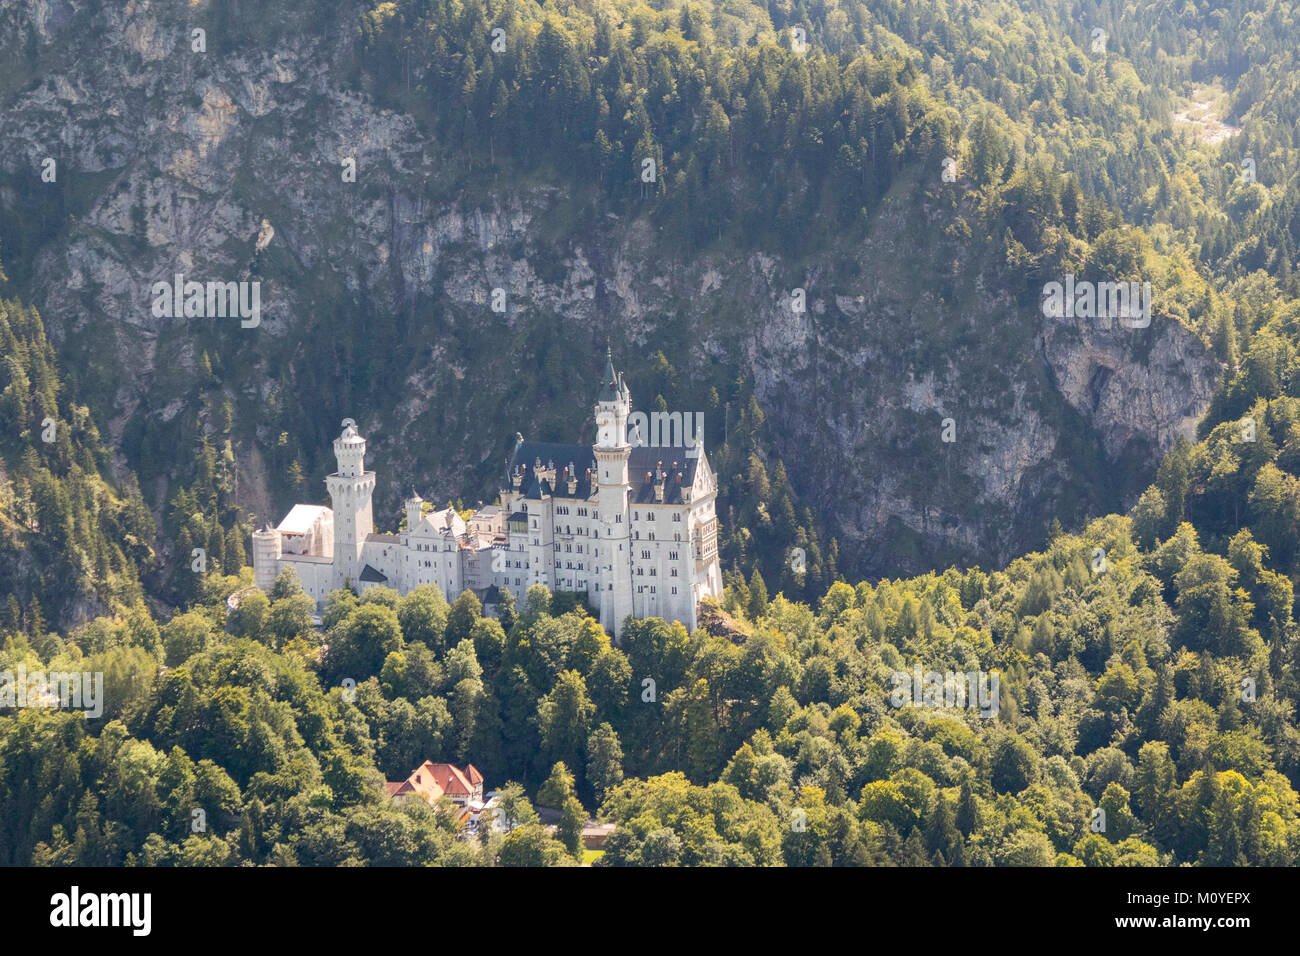 Aerial view of Neuschwanstein Castle, Bavaria, Germany - Stock Image